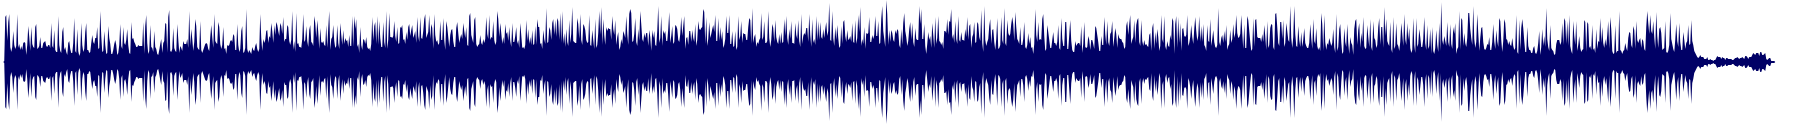 waveform of track #43451